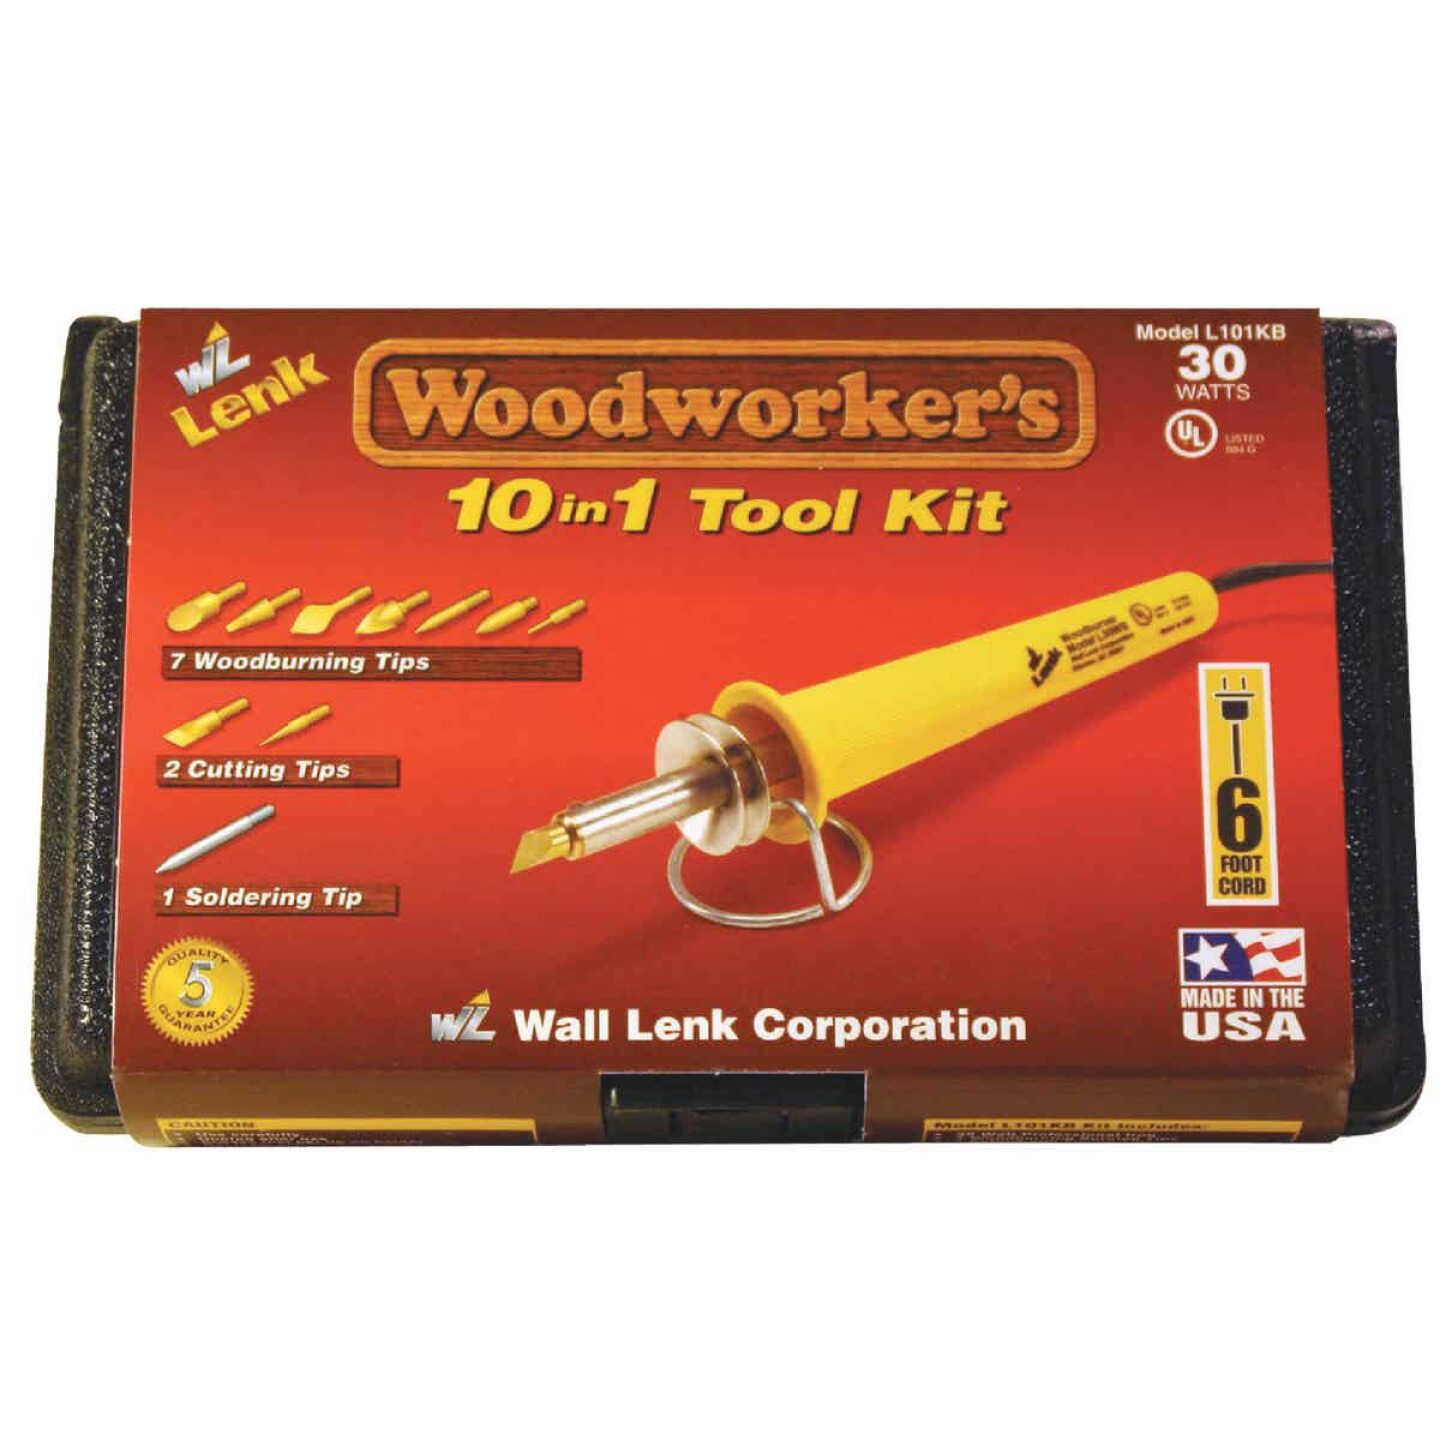 Wall Lenk Woodworker's 30W 10-in-1 Wood Burning Kit Image 4